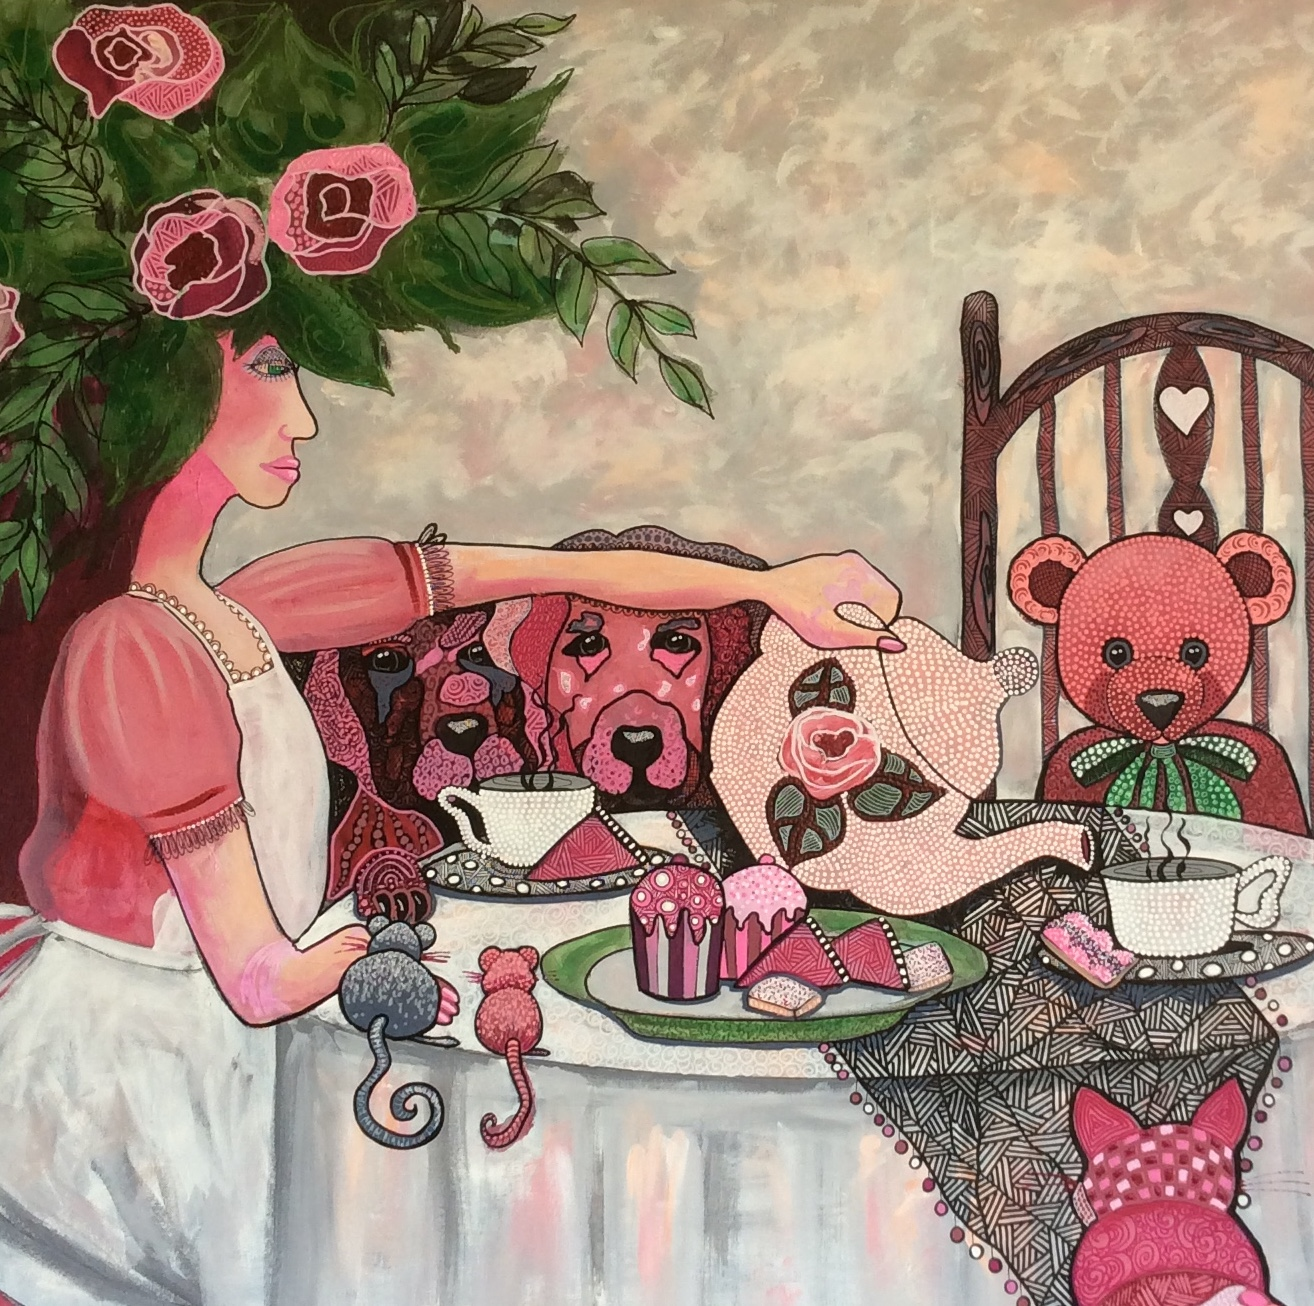 I Had A Little Tea Party by Diane McDonald